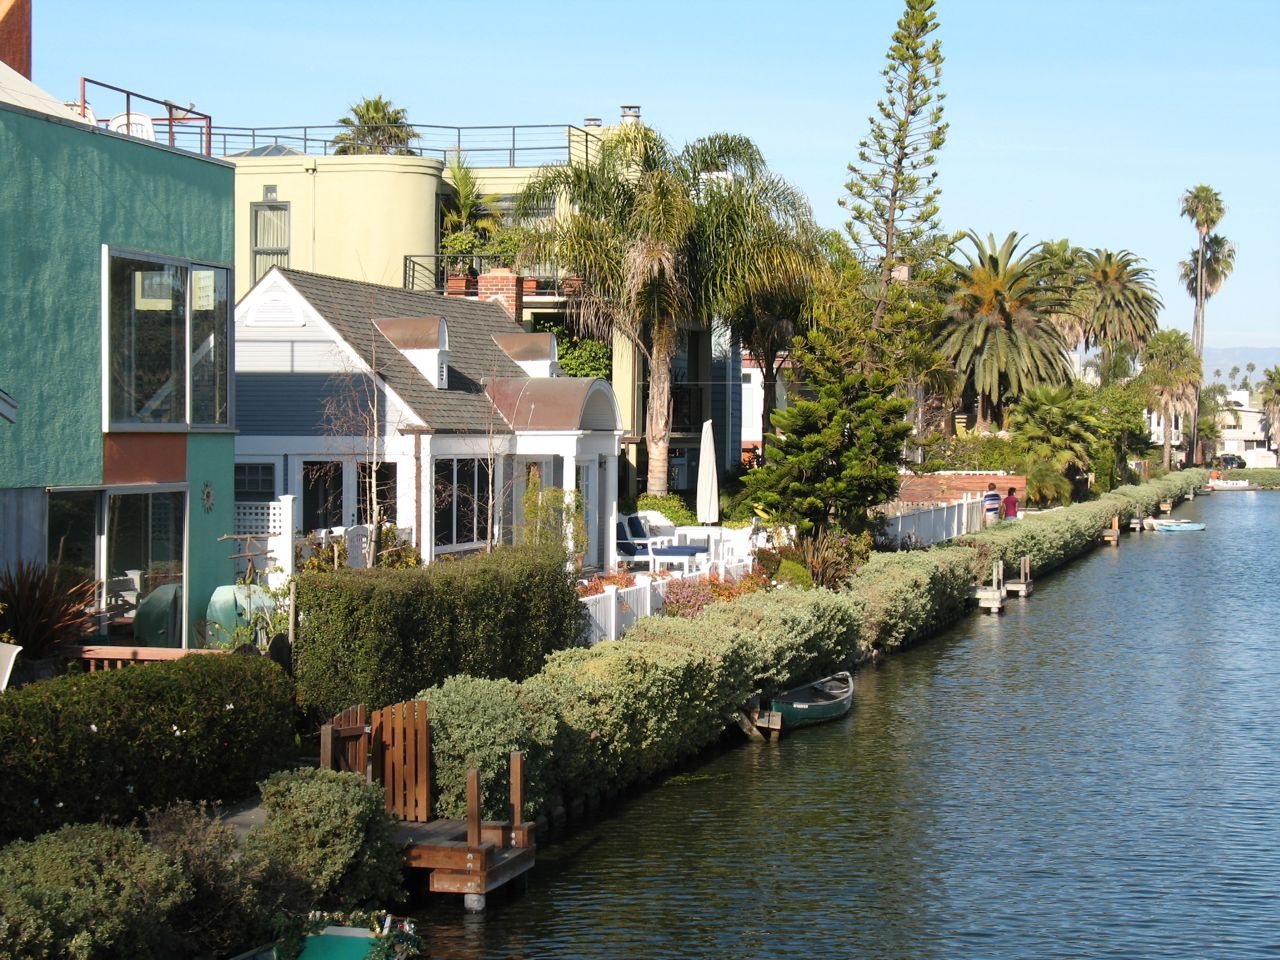 https://i2.wp.com/www.alicesgardentravelbuzz.com/wp-content/uploads/2011/03/Venice-California-Canal-Photo-Alice-Joyce1.jpg